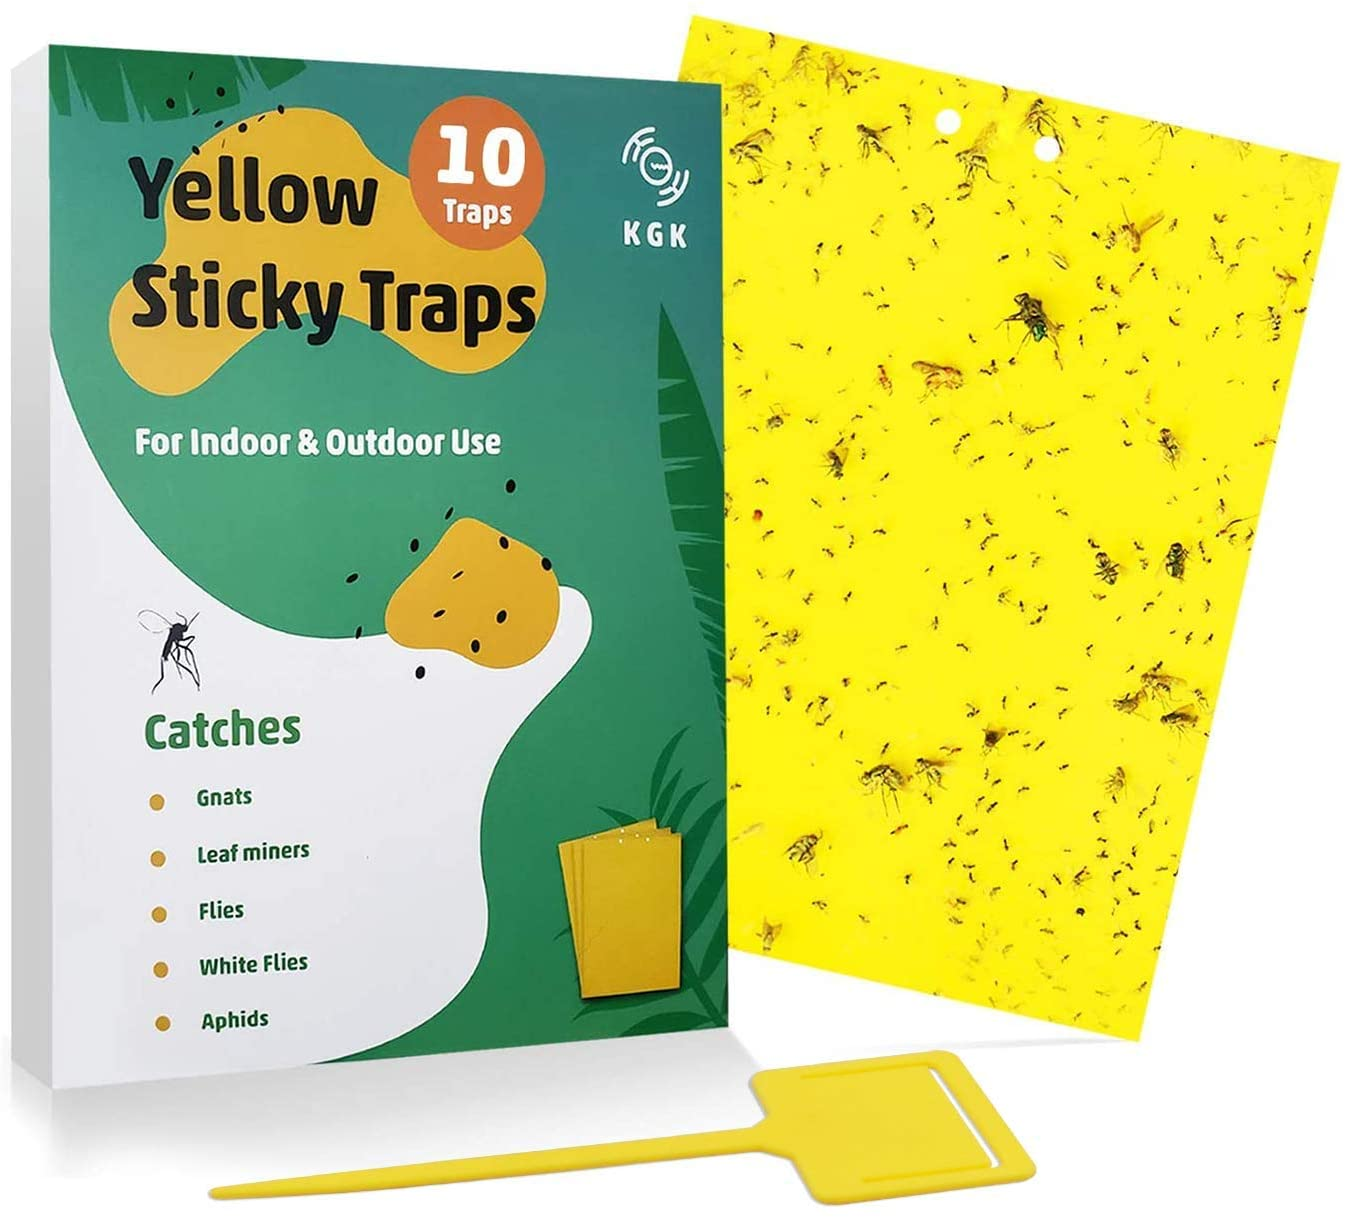 KGK Sticky Traps - 10 Pack, Dual-Sided Yellow Sticky Traps for Fungus Gnats, Aphids, and Other Flying Plant Insects - 6x8 Inches (Twist Ties and Holders Included)